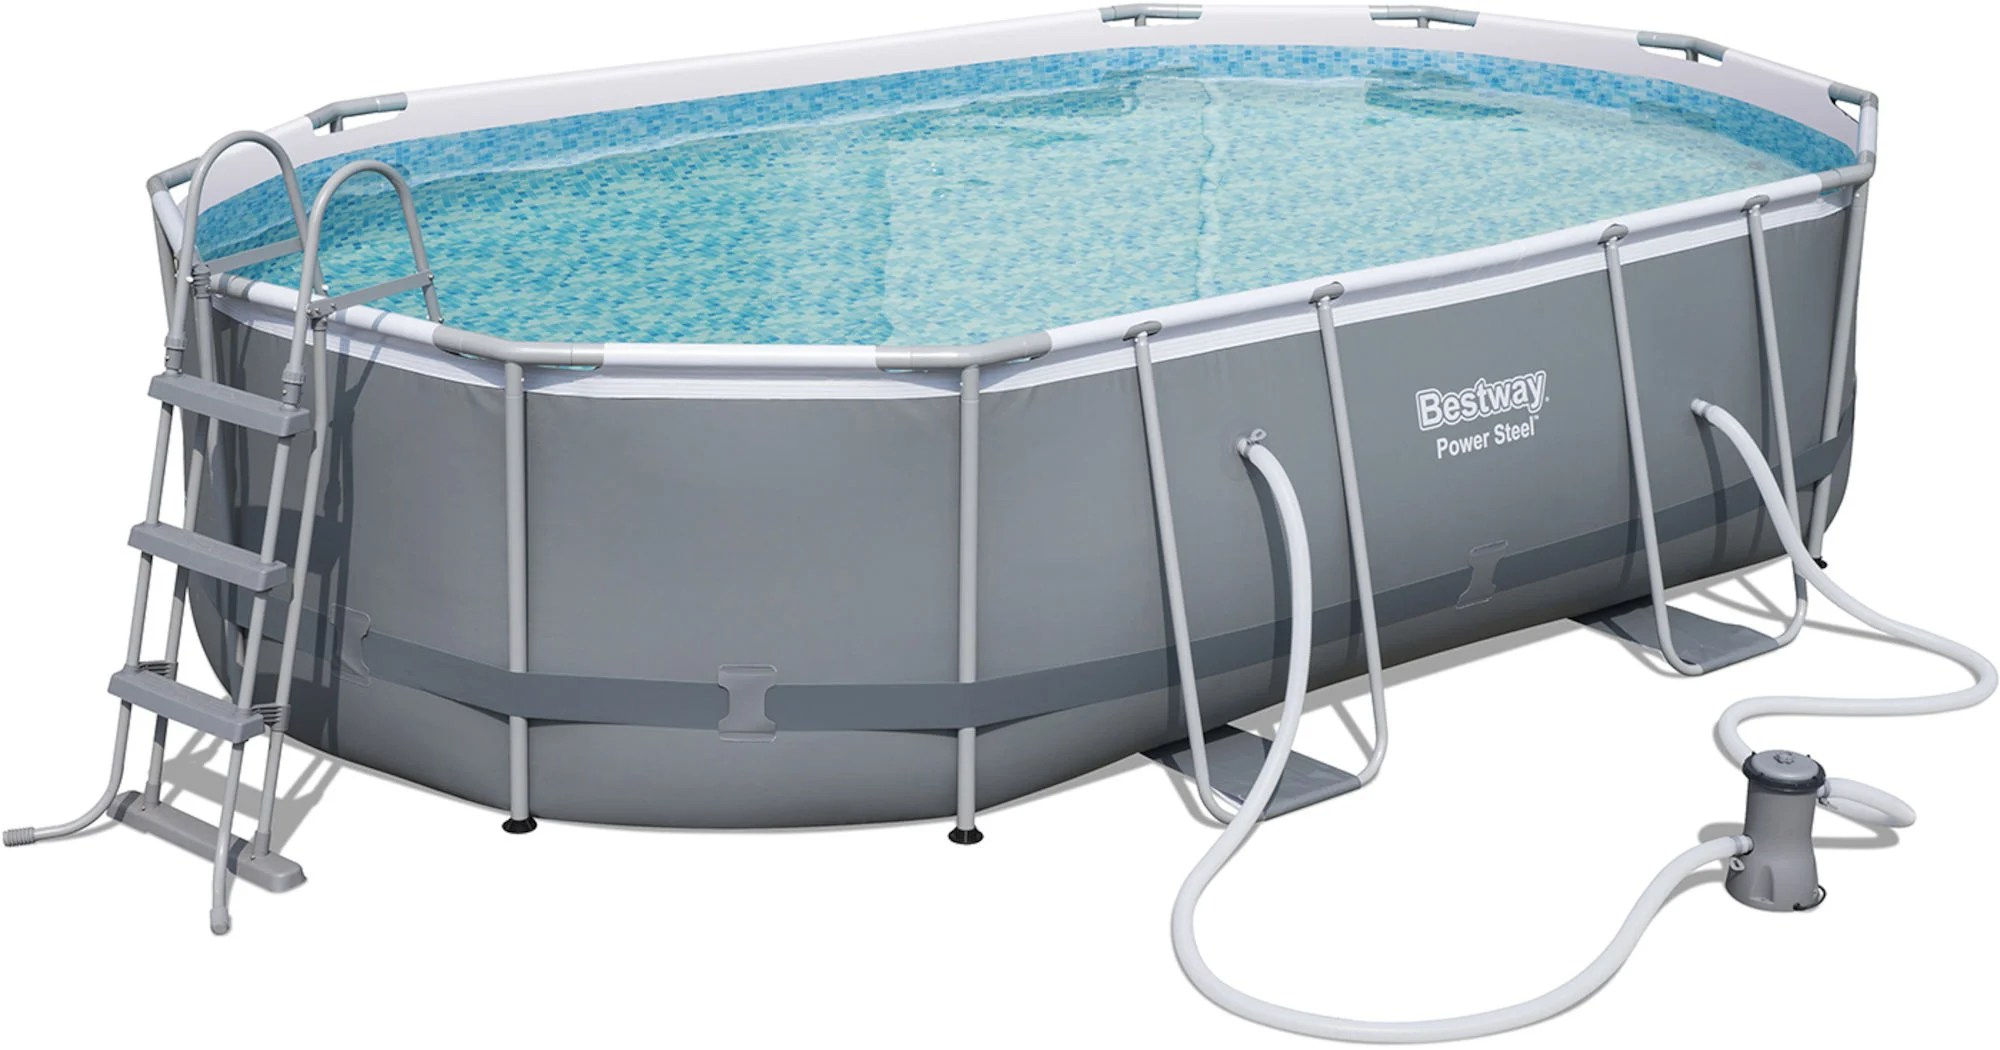 Bestway Pool Abdeckung Oval Kjøp Bestway Power Steel Oval Pool Set Jollyroom